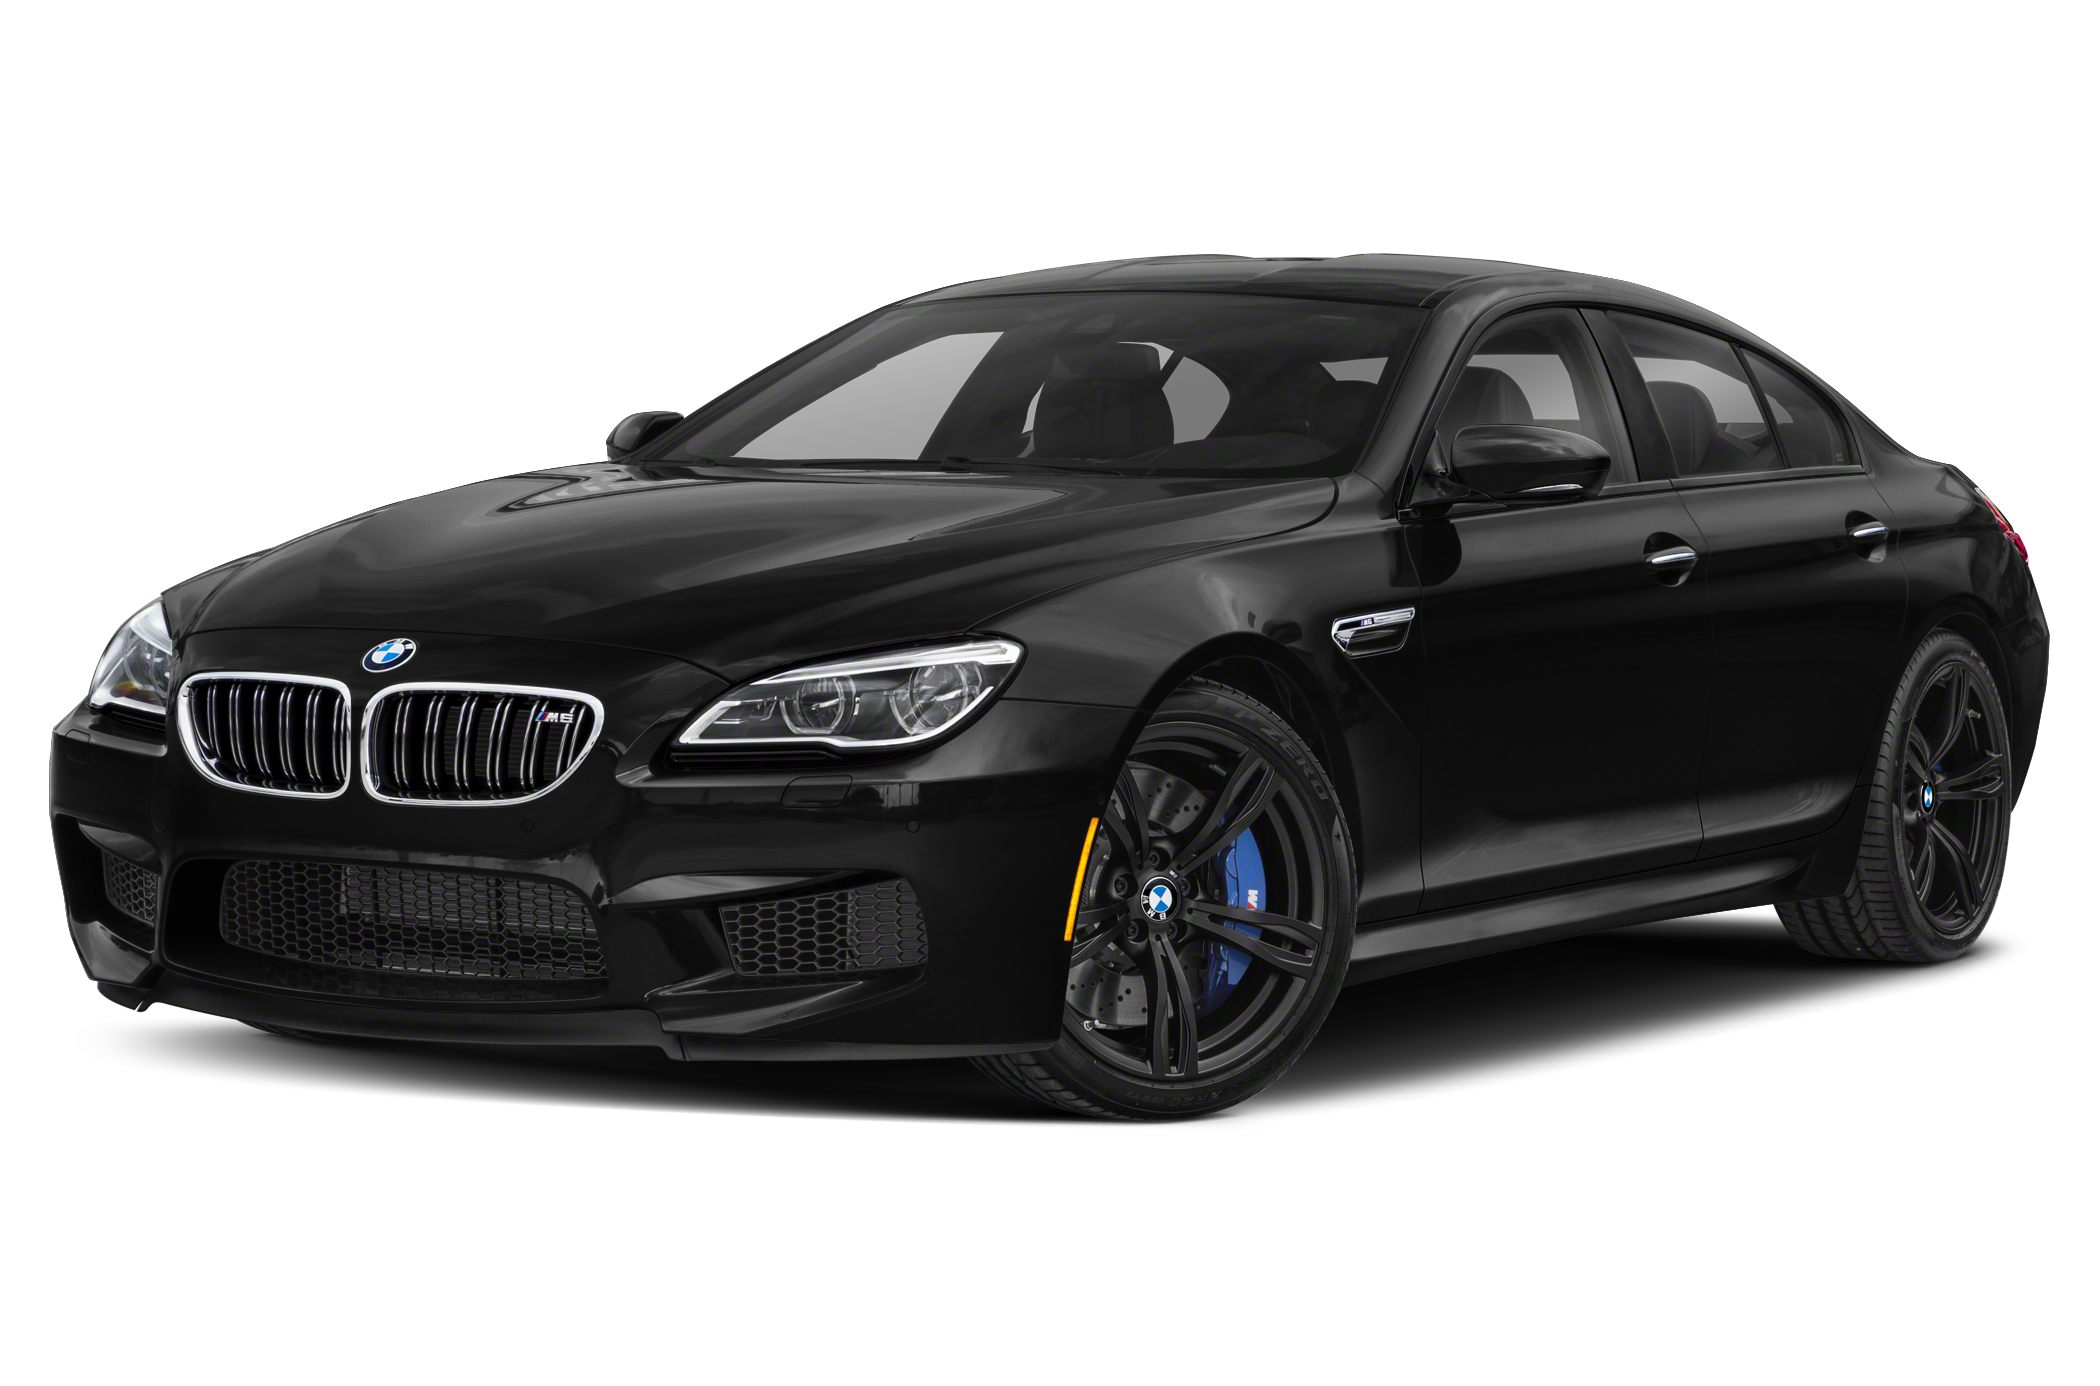 2019 Bmw M6 Gran Coupe Specs And Prices